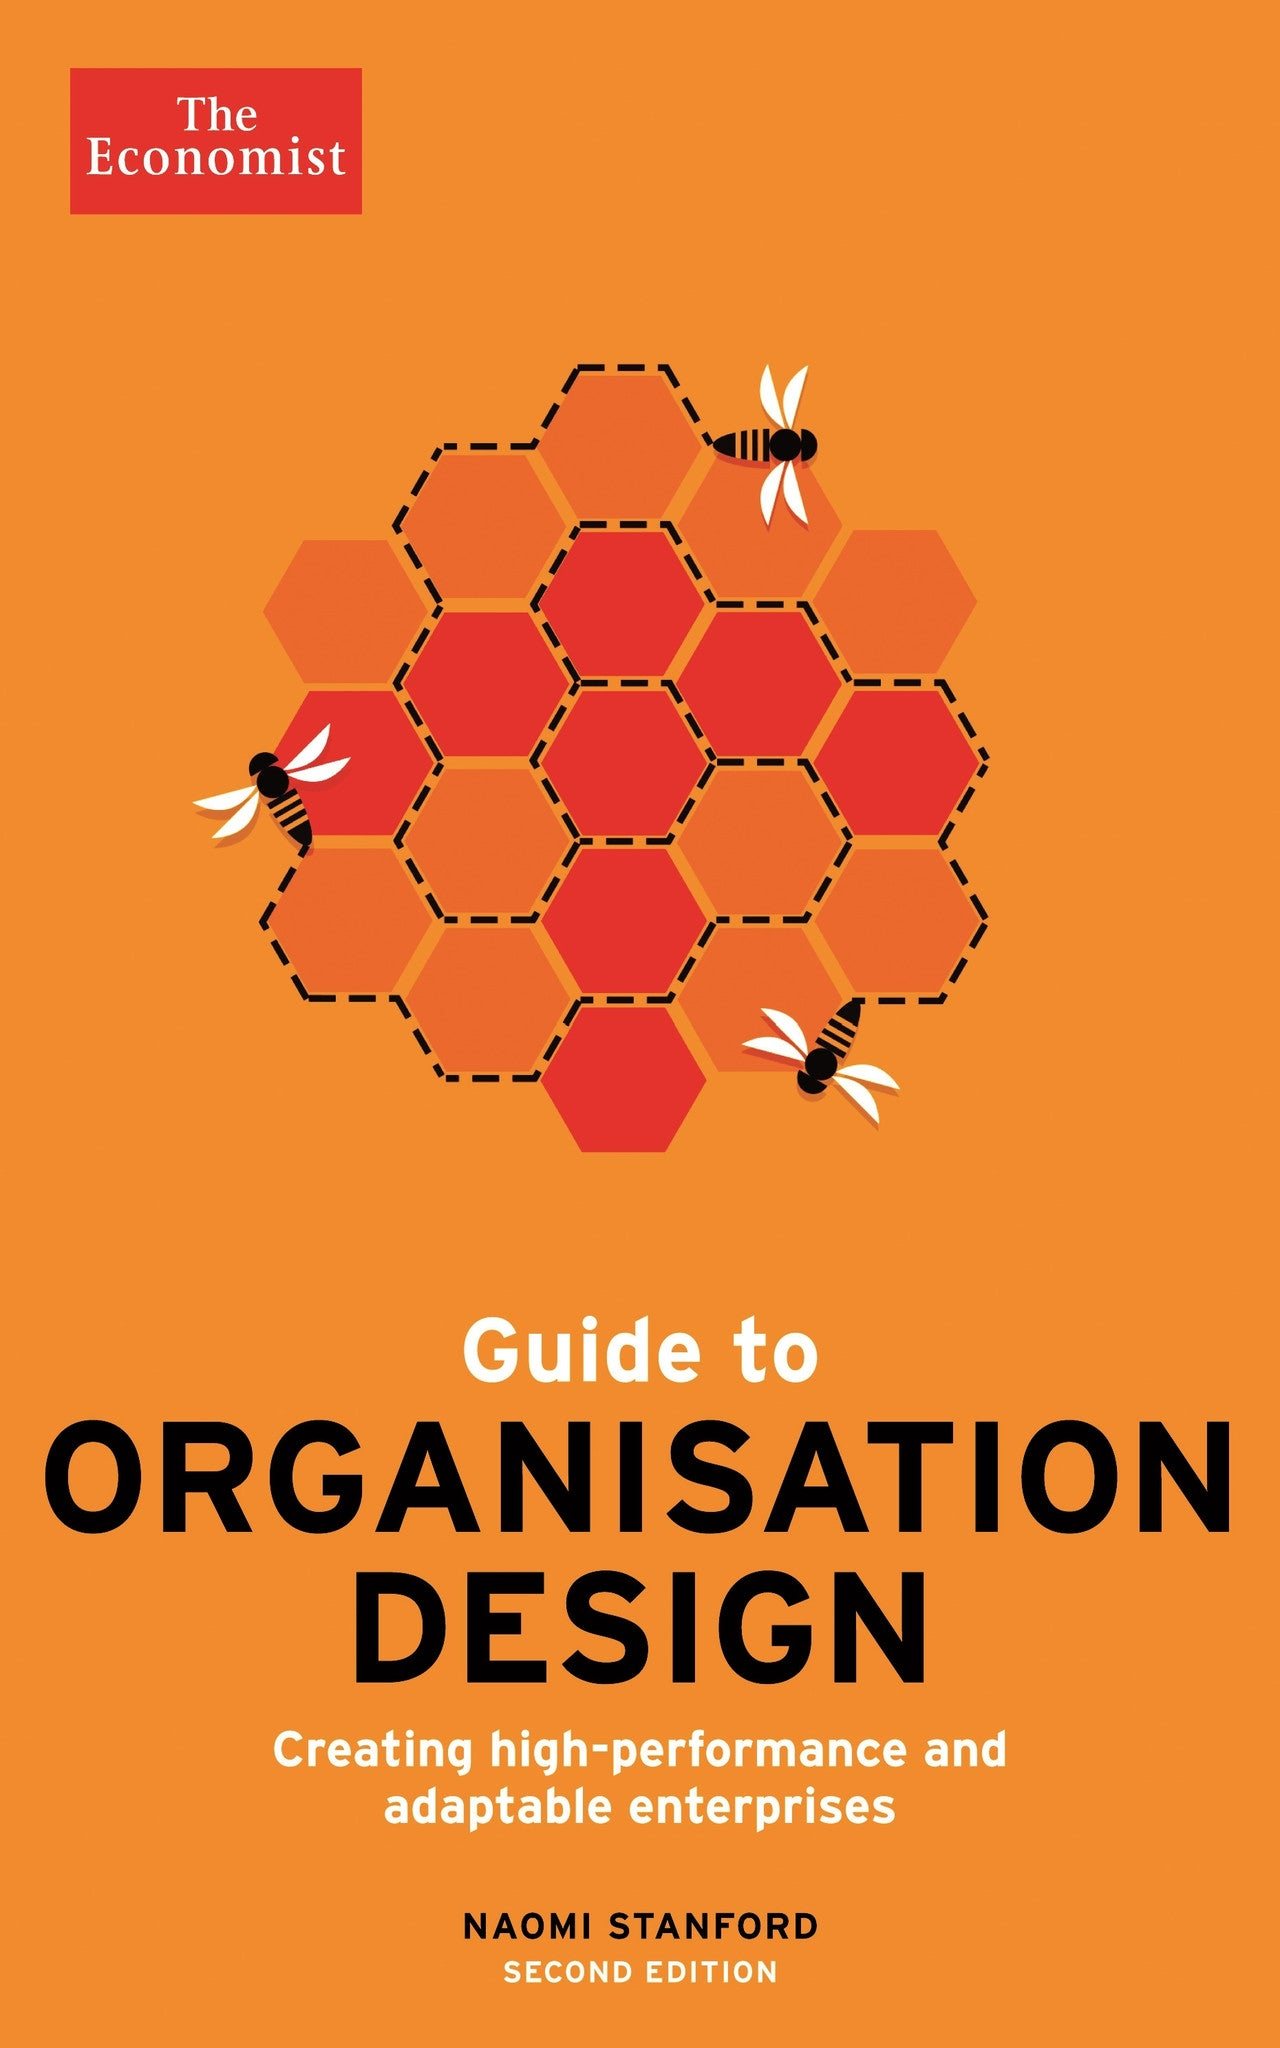 Guide to Organisation Design by Naomi Sandford